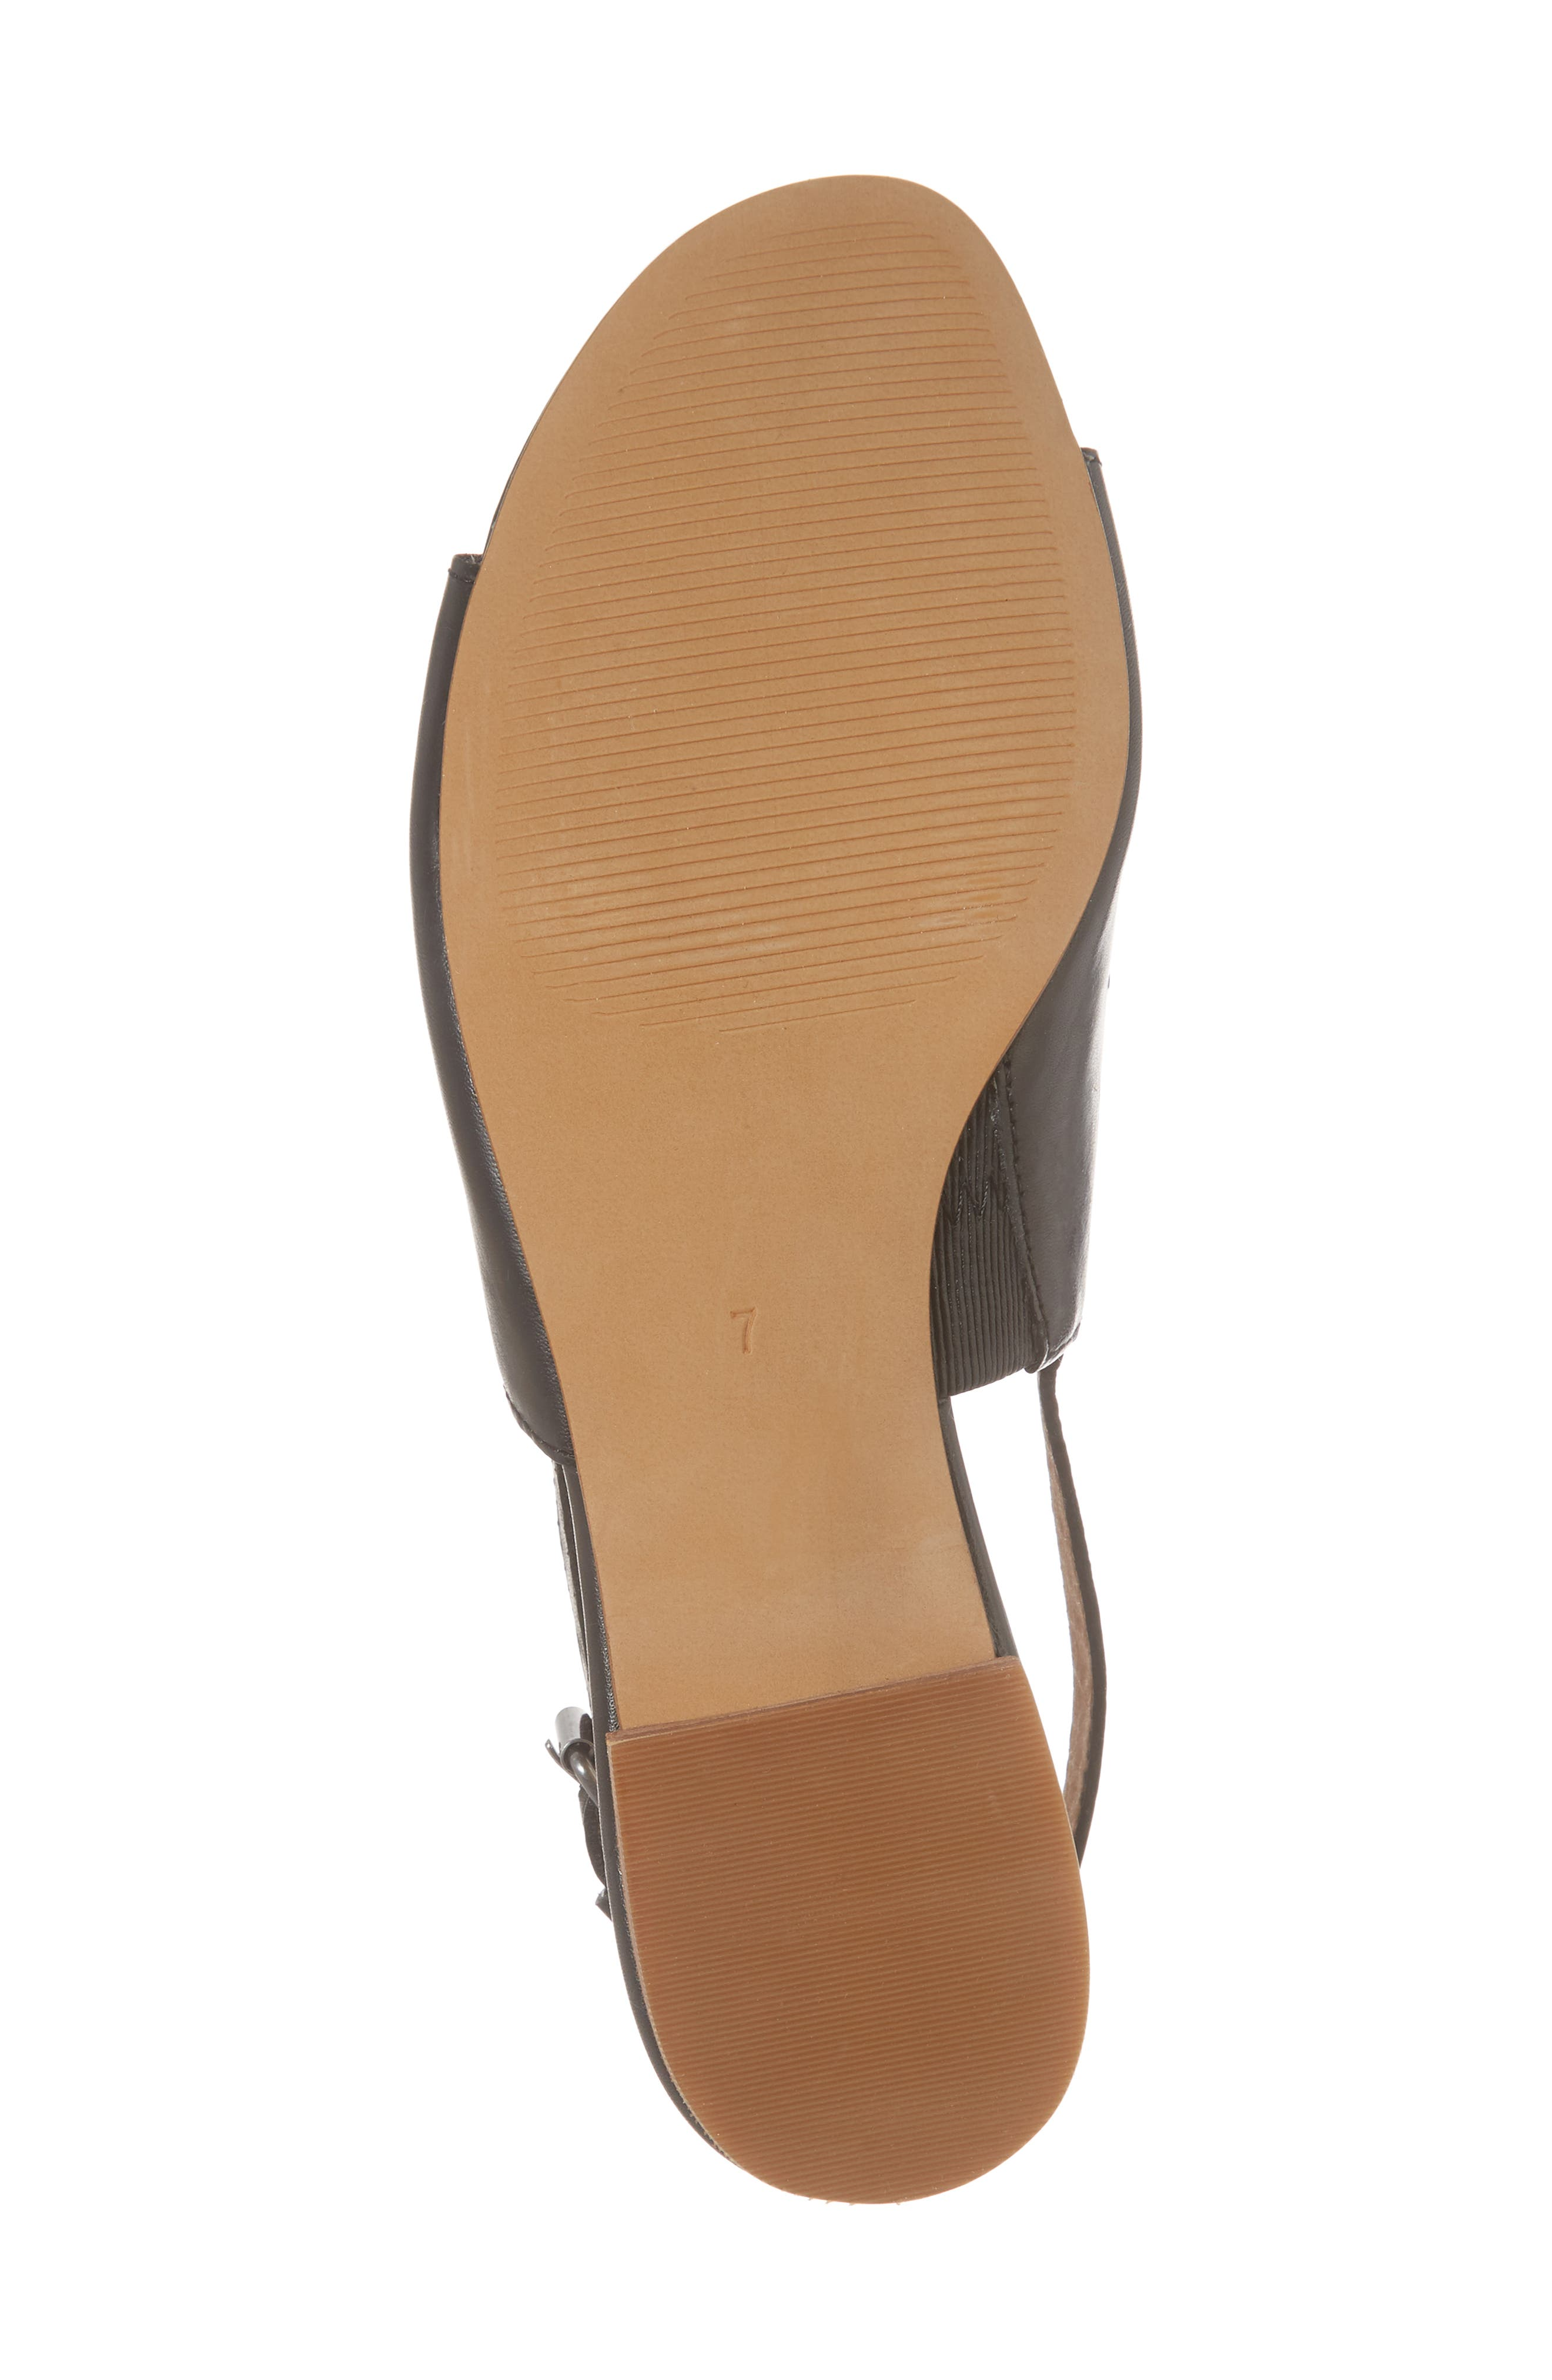 Noelle Slingback Sandal,                             Alternate thumbnail 6, color,                             001